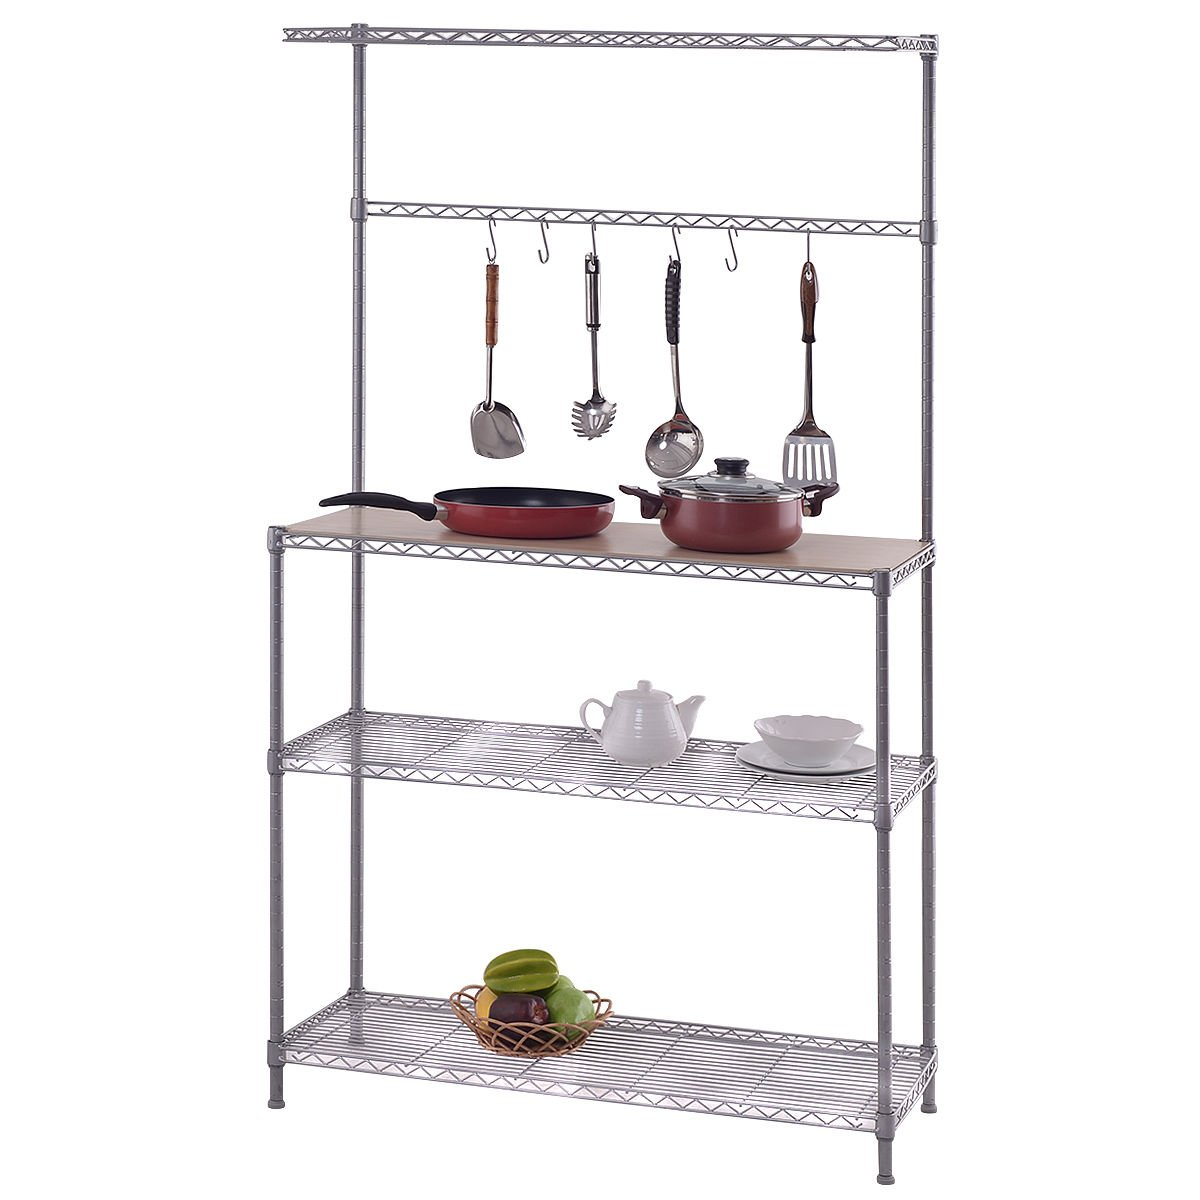 DPThouse VD-55010HW 4 Tier Baker's Rack Adjustable Microwave Oven Organizer Stand Kitchen Storage Shelf with Cutting Board Workstation, Silver